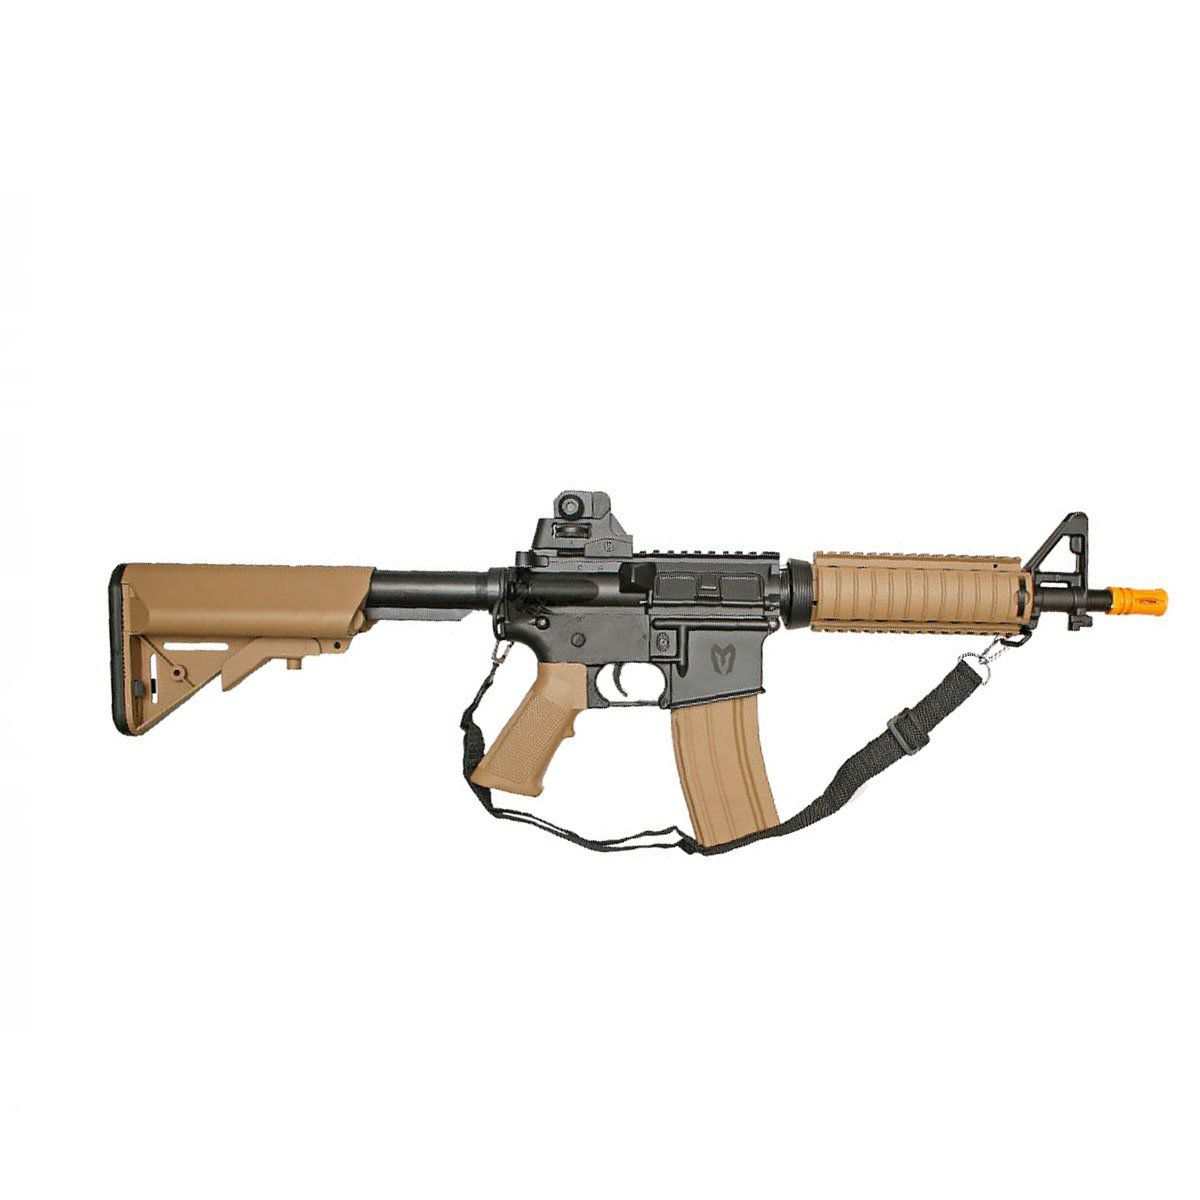 Rifle de Airsoft Cybergun Colt M4A1 Semi Metal Elétrico 6mm